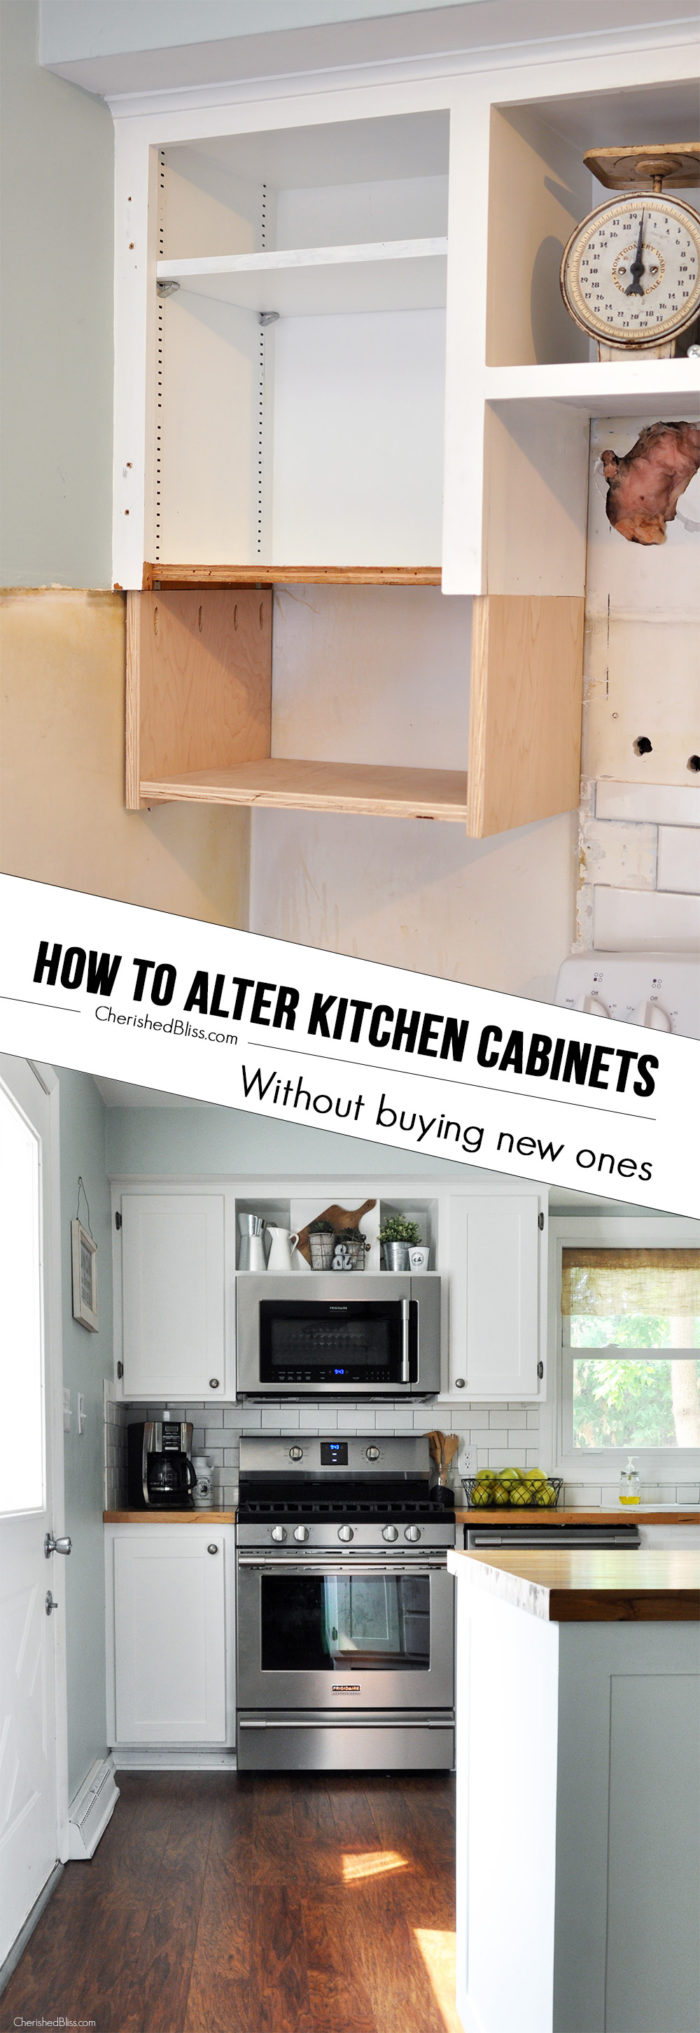 Doorless Kitchen Cabinets How To Alter Kitchen Cabinets Cherished Bliss